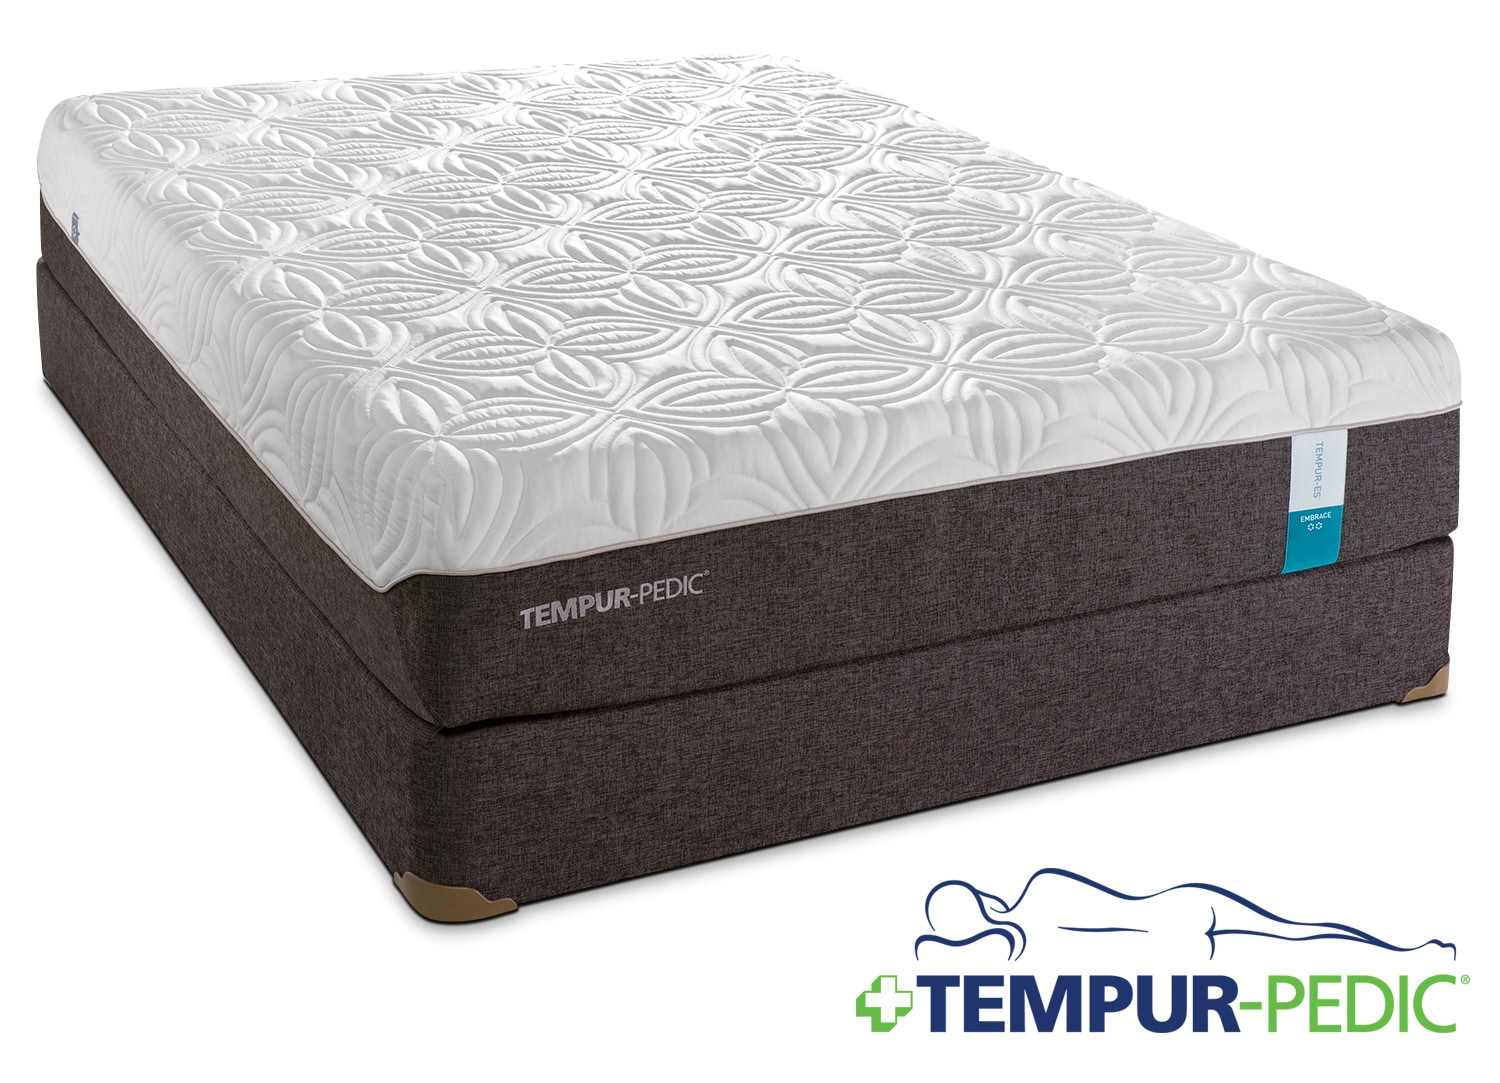 Mattresses and Bedding - Tempur-Pedic Embrace Queen Mattress/Boxspring Set